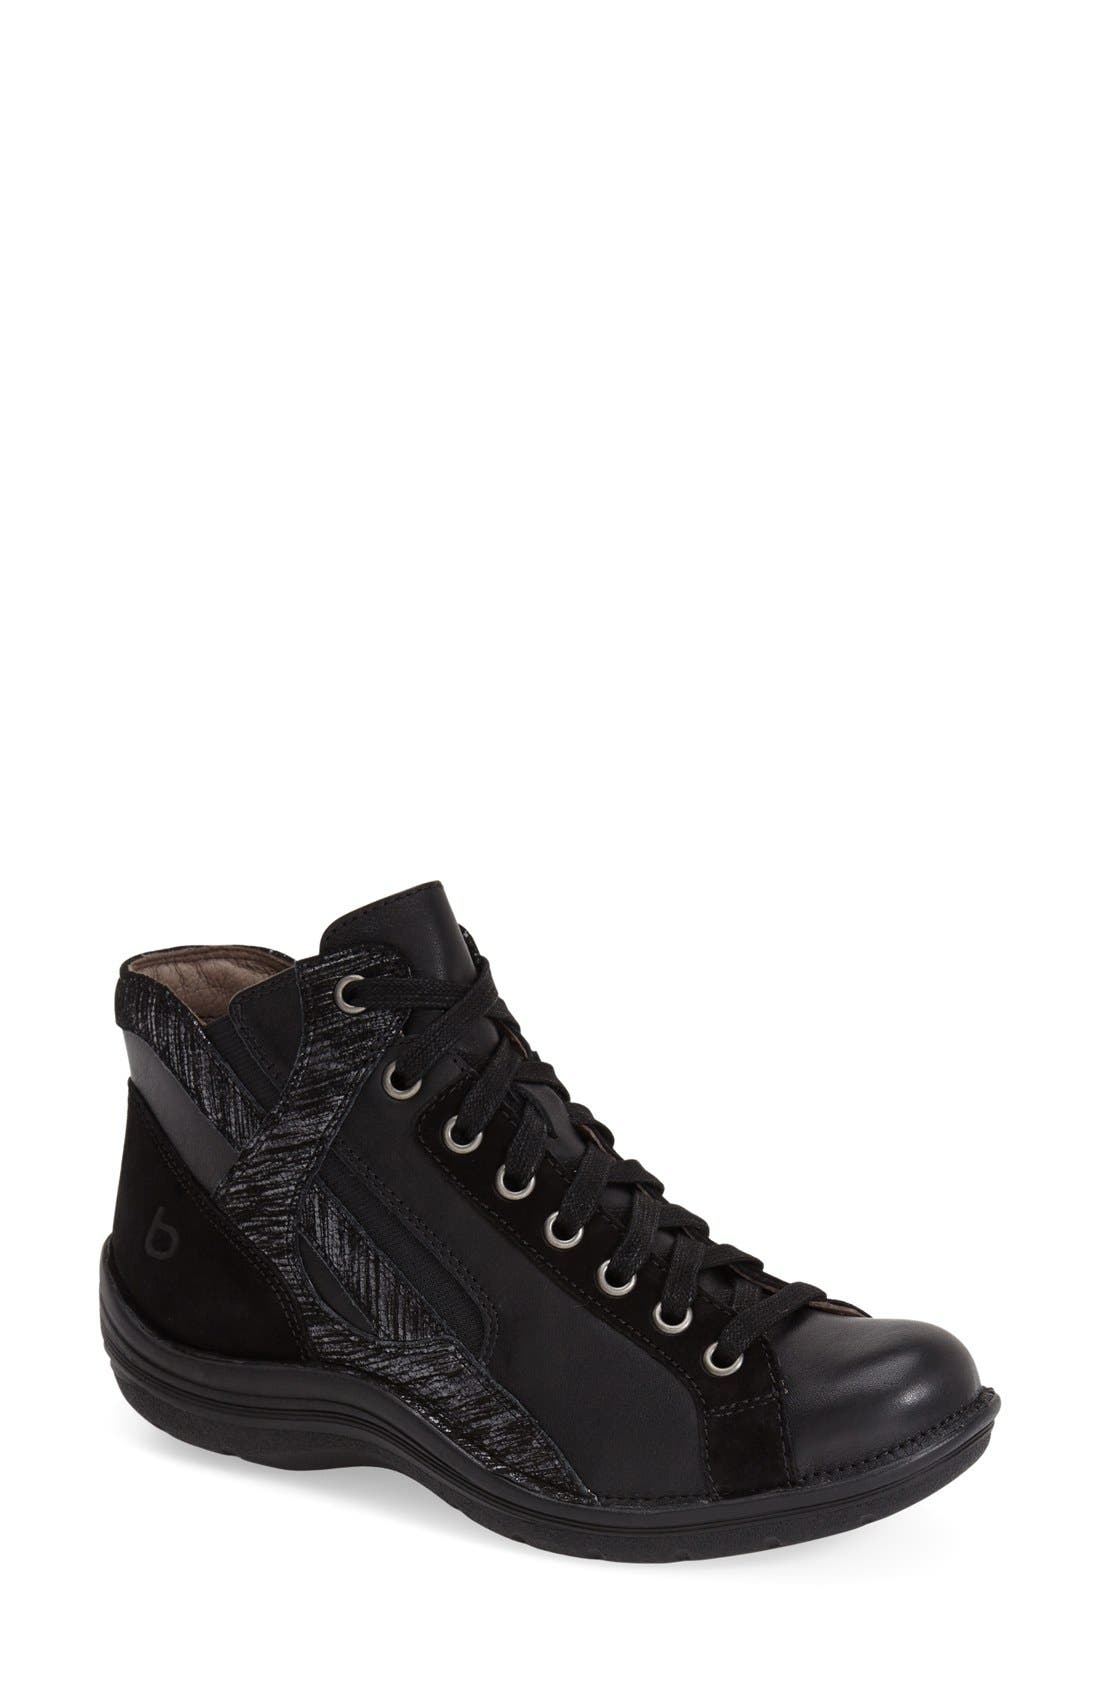 'Orbit' Boot,                         Main,                         color, Black/ Anthracite Leather